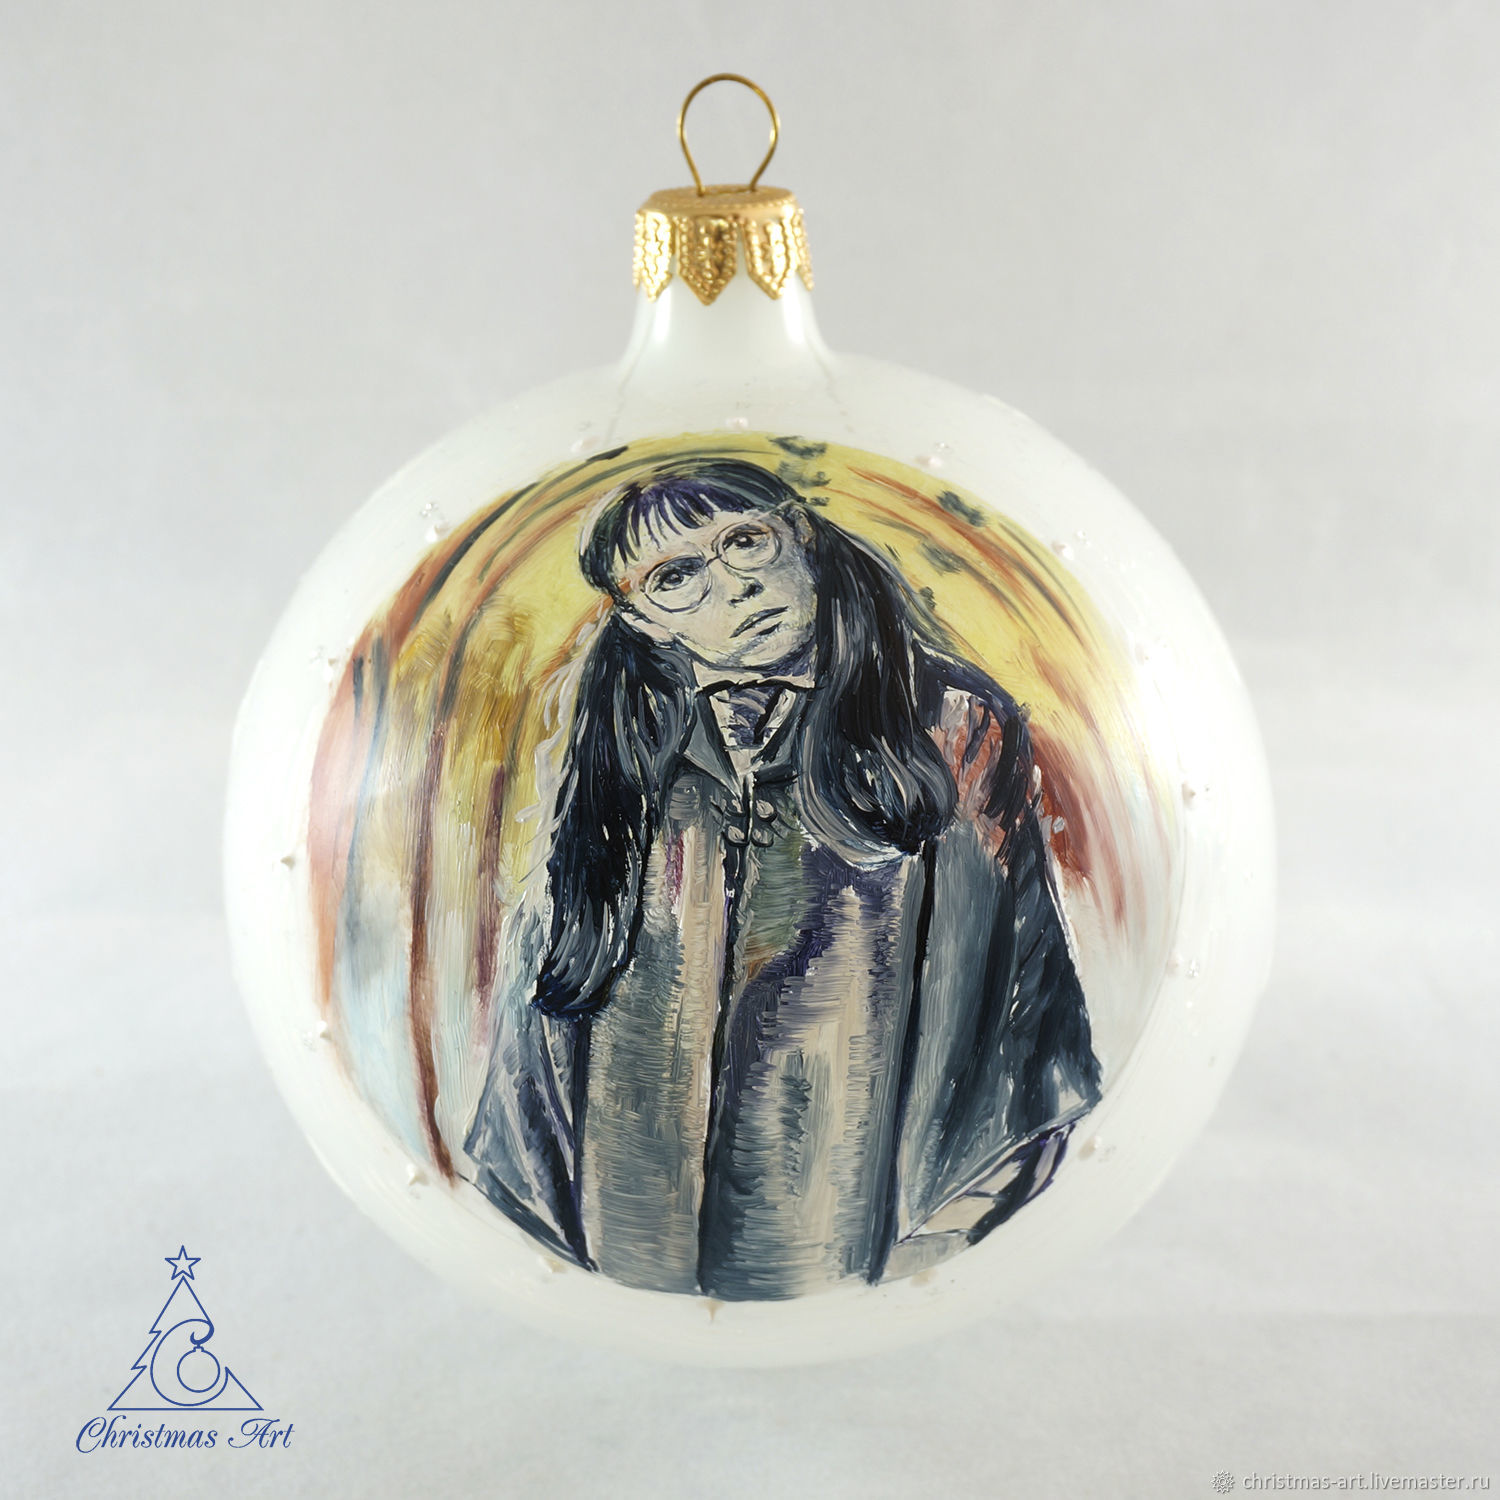 Portrait On A Christmas Ball By Harry Potter Christmas Toy To Order